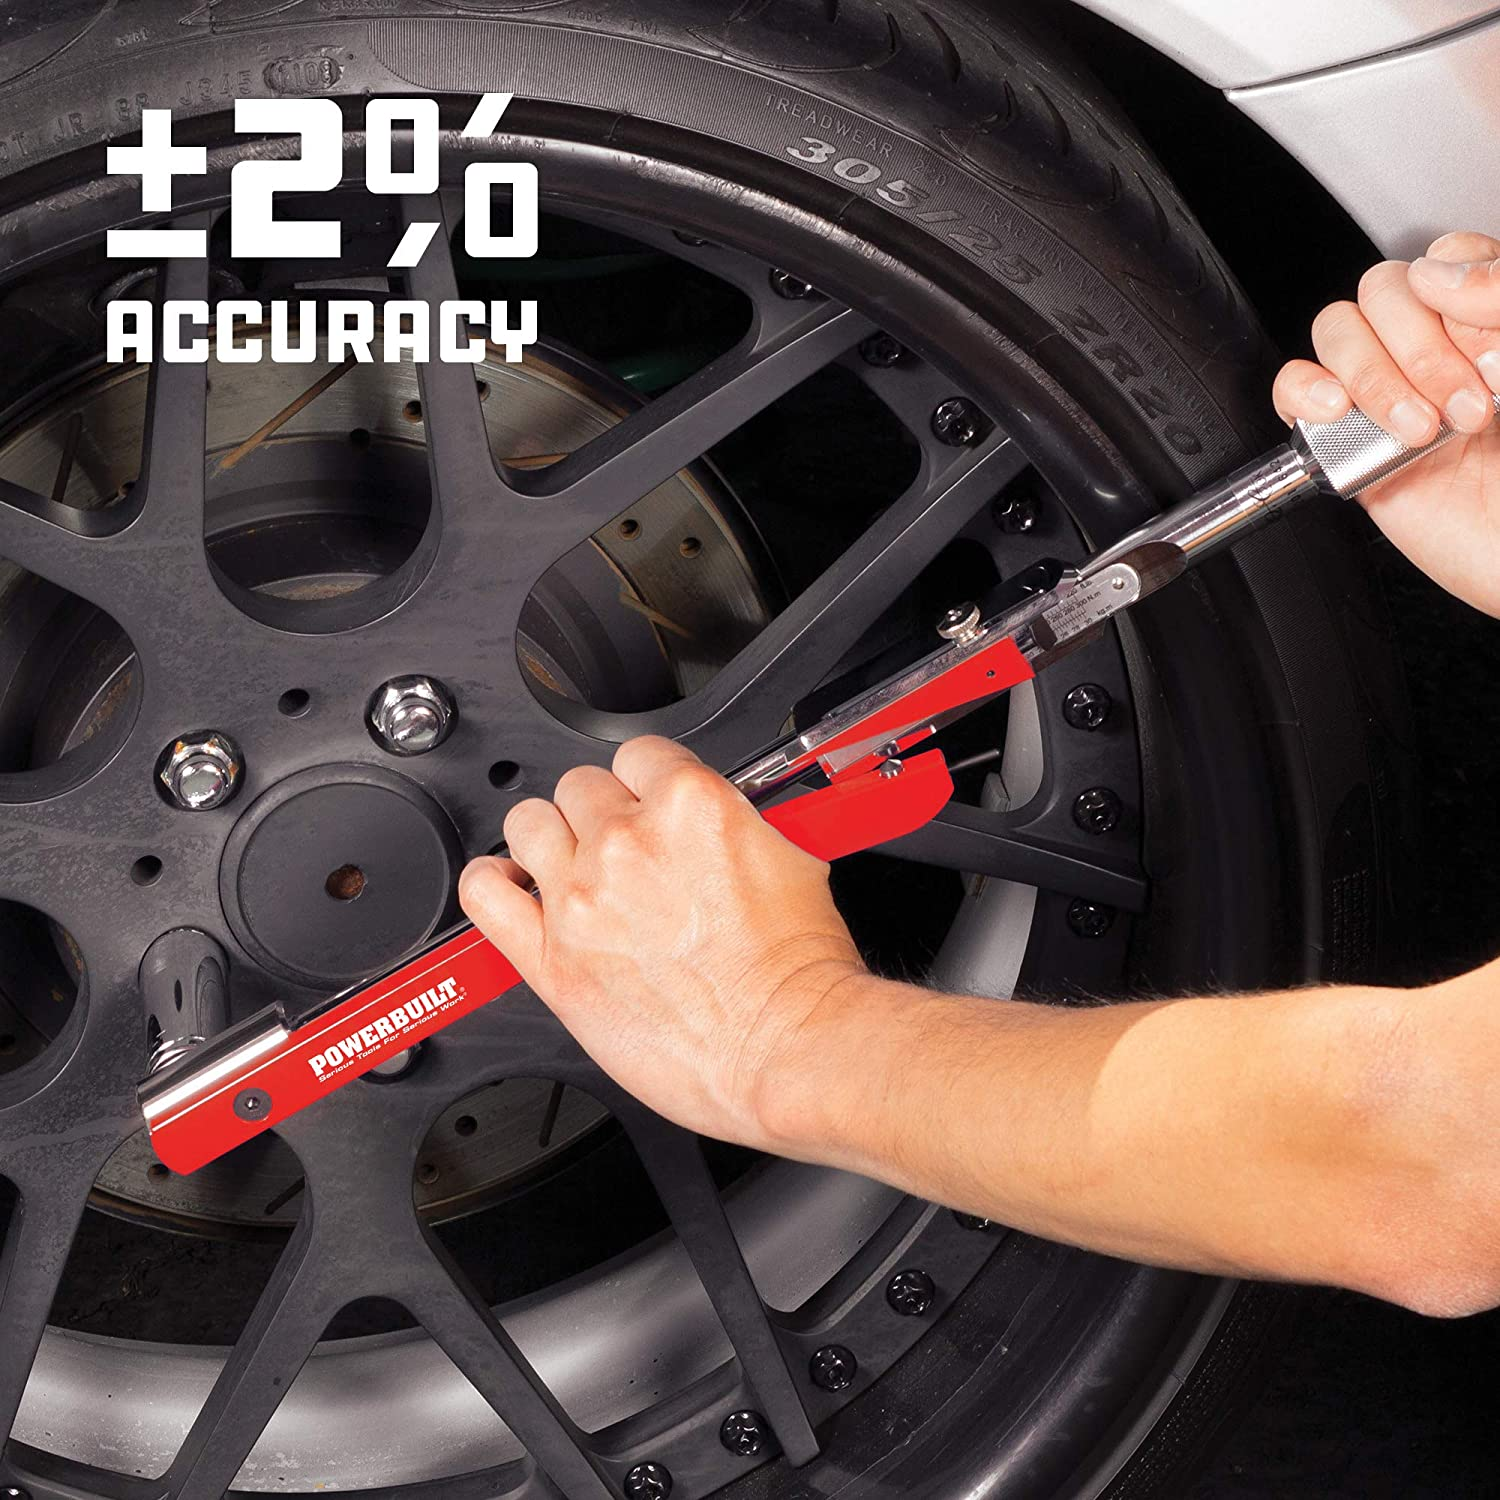 Powerbuilt 649972 1//2-Inch Drive Deflecting Beam Torque Wrench